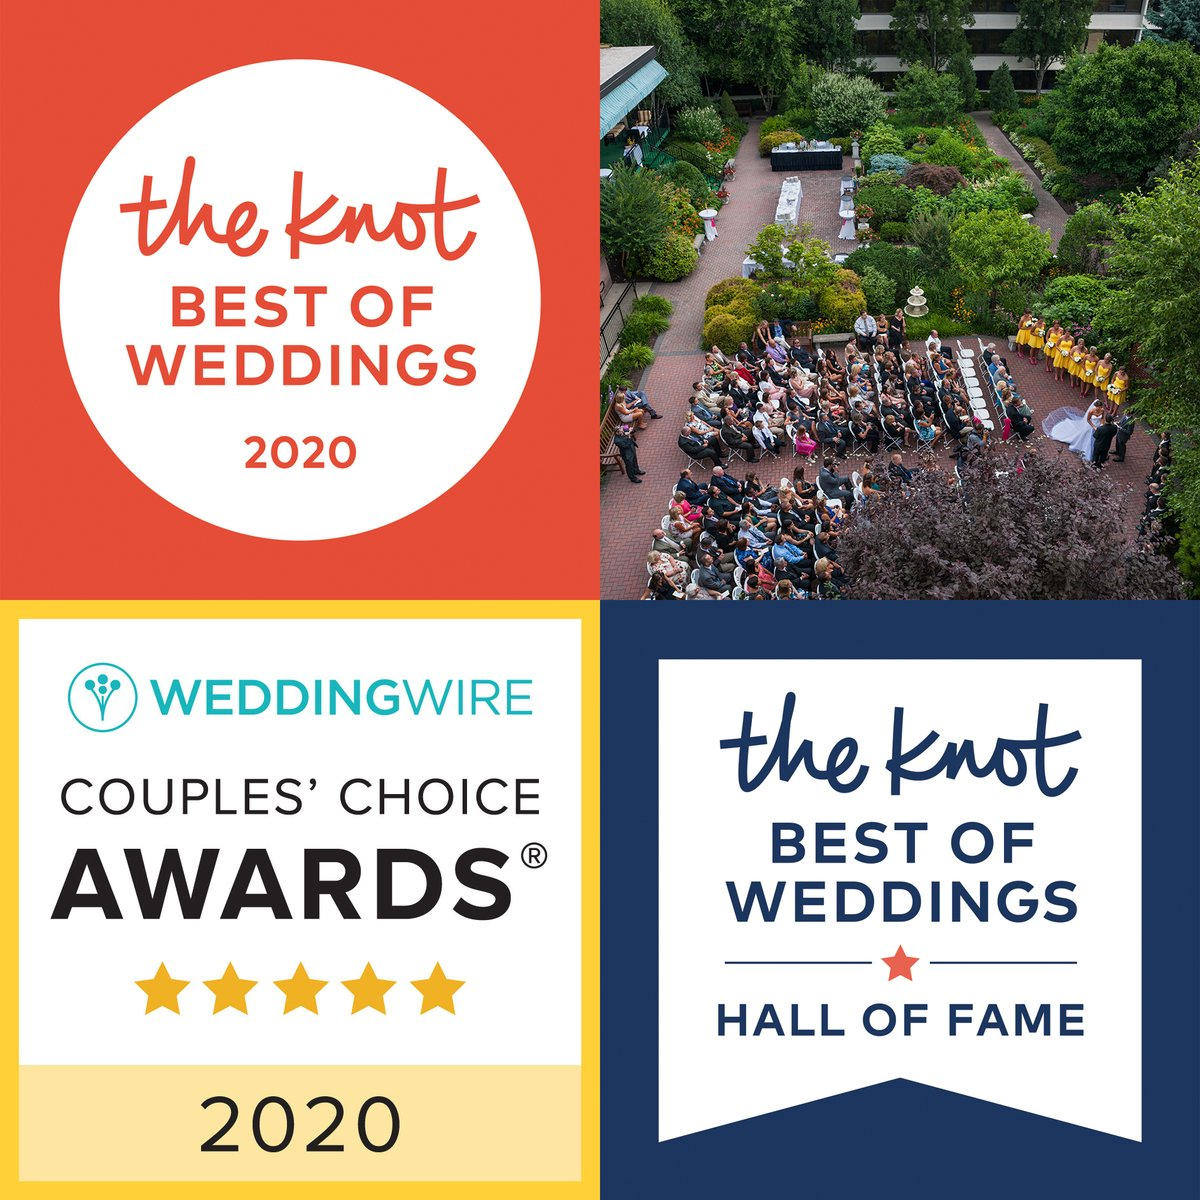 The @RadnorHotel is a 2020 Winner of @theknot's #BestOfWeddings and #HallOfFame, and @WeddingWire's #CouplesChoice #Awards! Learn more about this first-class #WeddingVenue that's been offering exceptional service for over 50 years on the #MainLine… https://radnorhotel.com/pic.twitter.com/XZDvRtYGCu